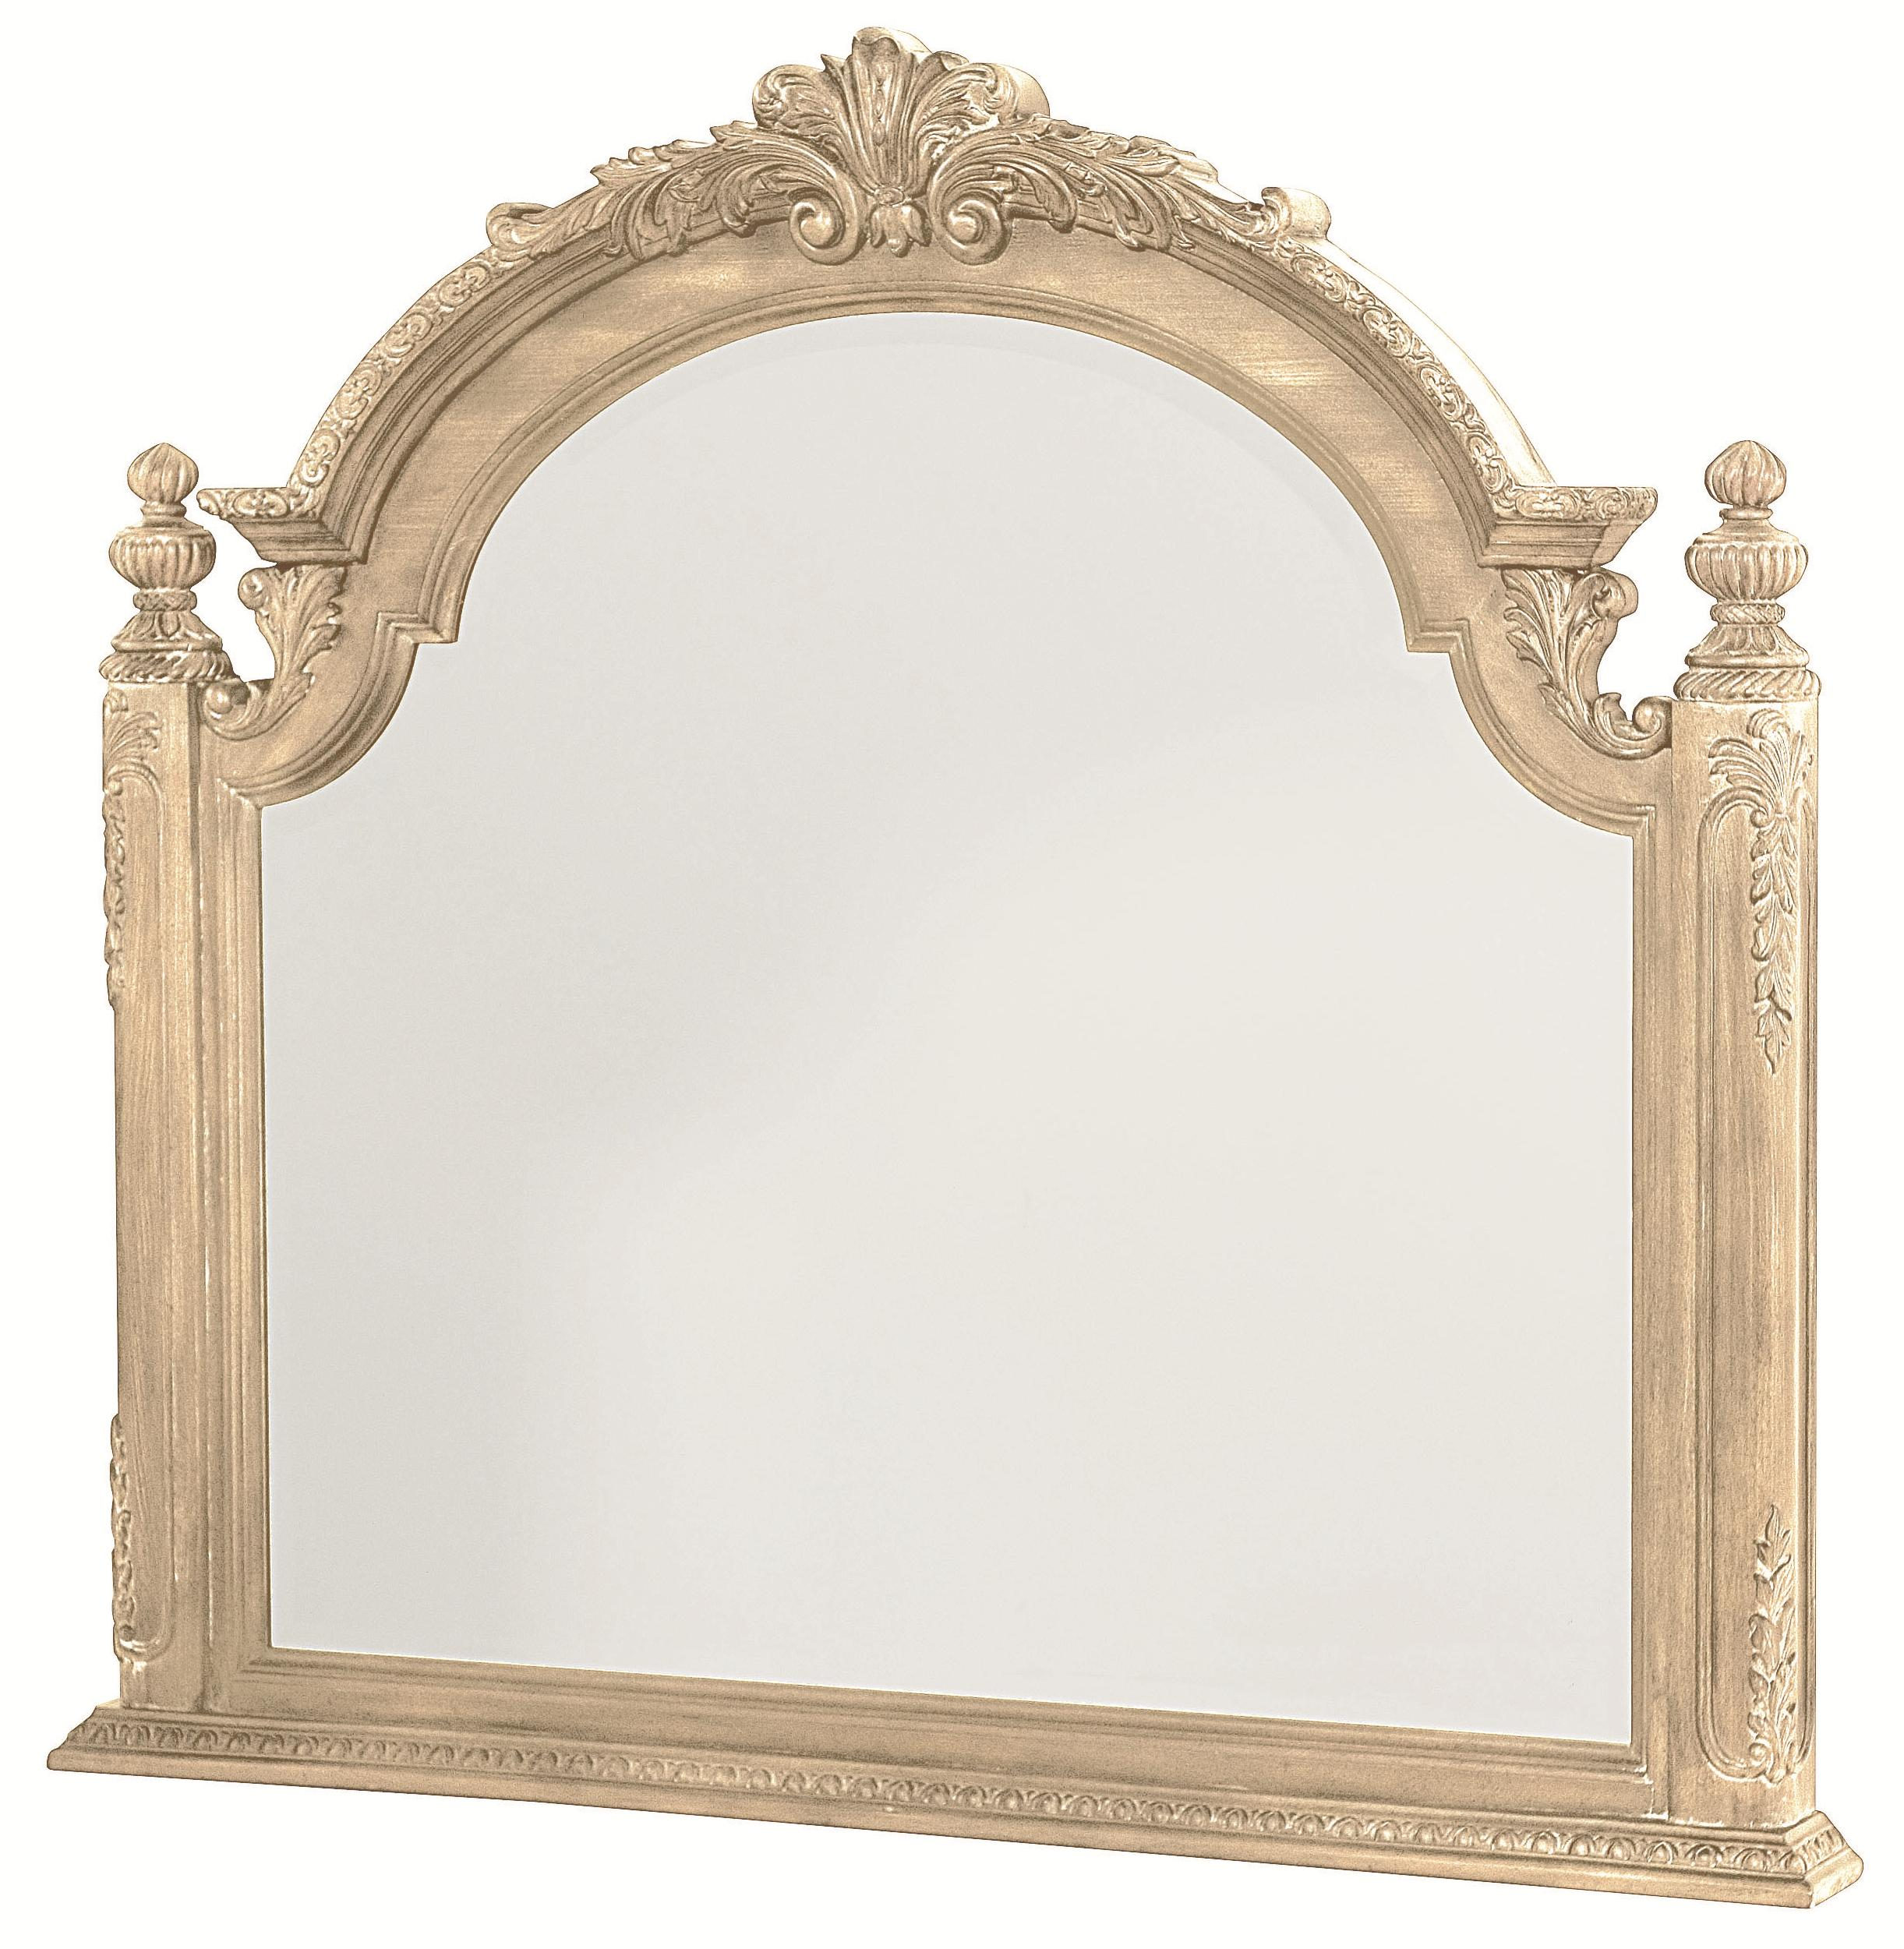 American Drew Jessica McClintock Home - The Boutique Collection Landscape Mirror - Item Number: 217-021W